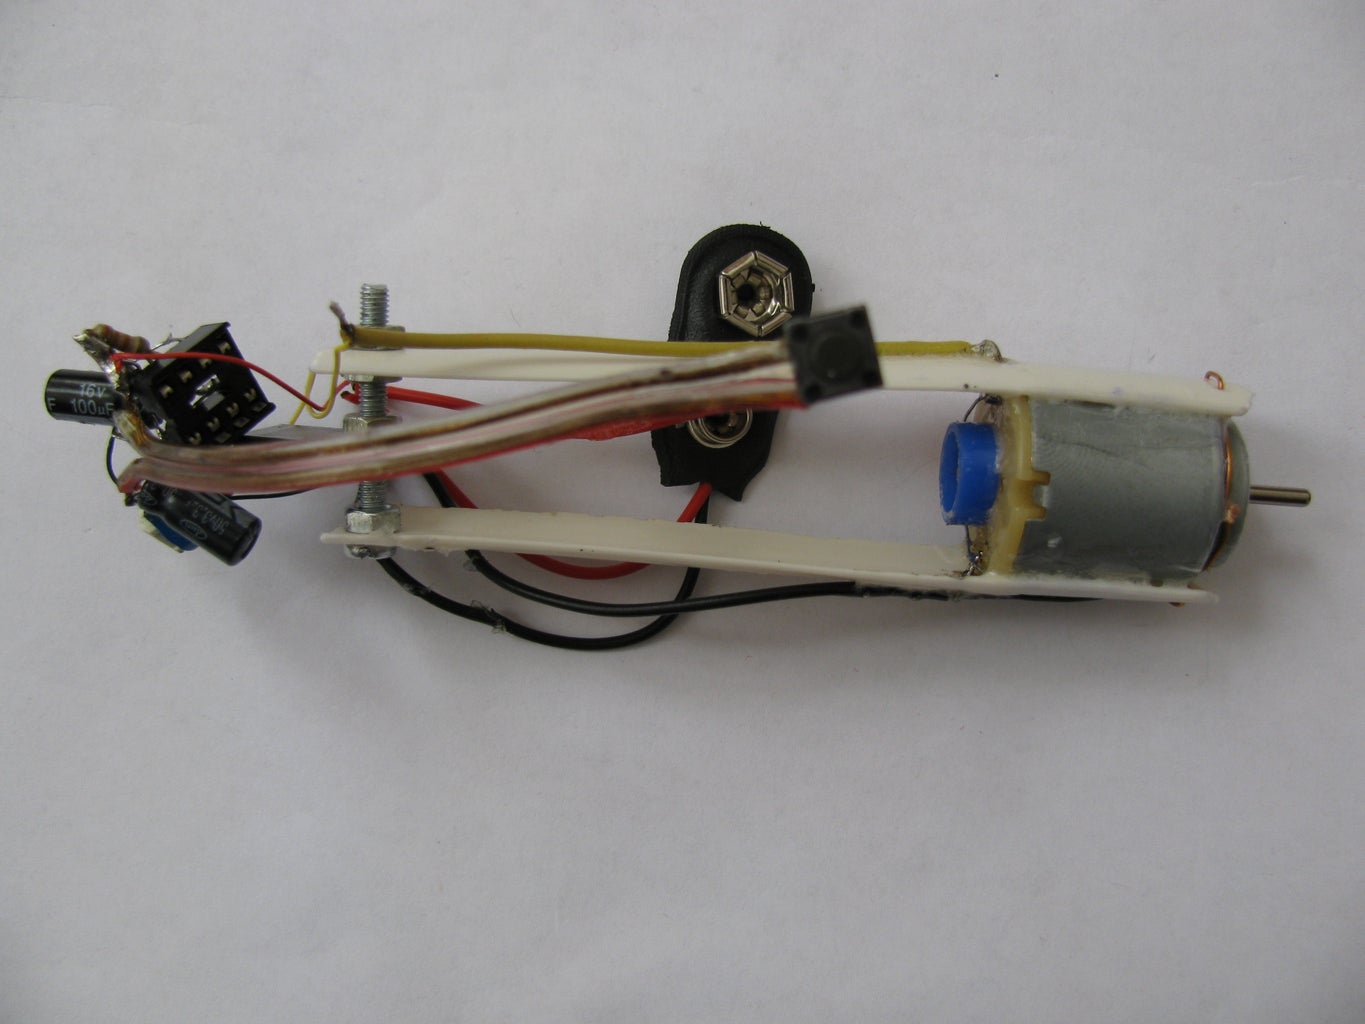 Attaching Circuit and Battery